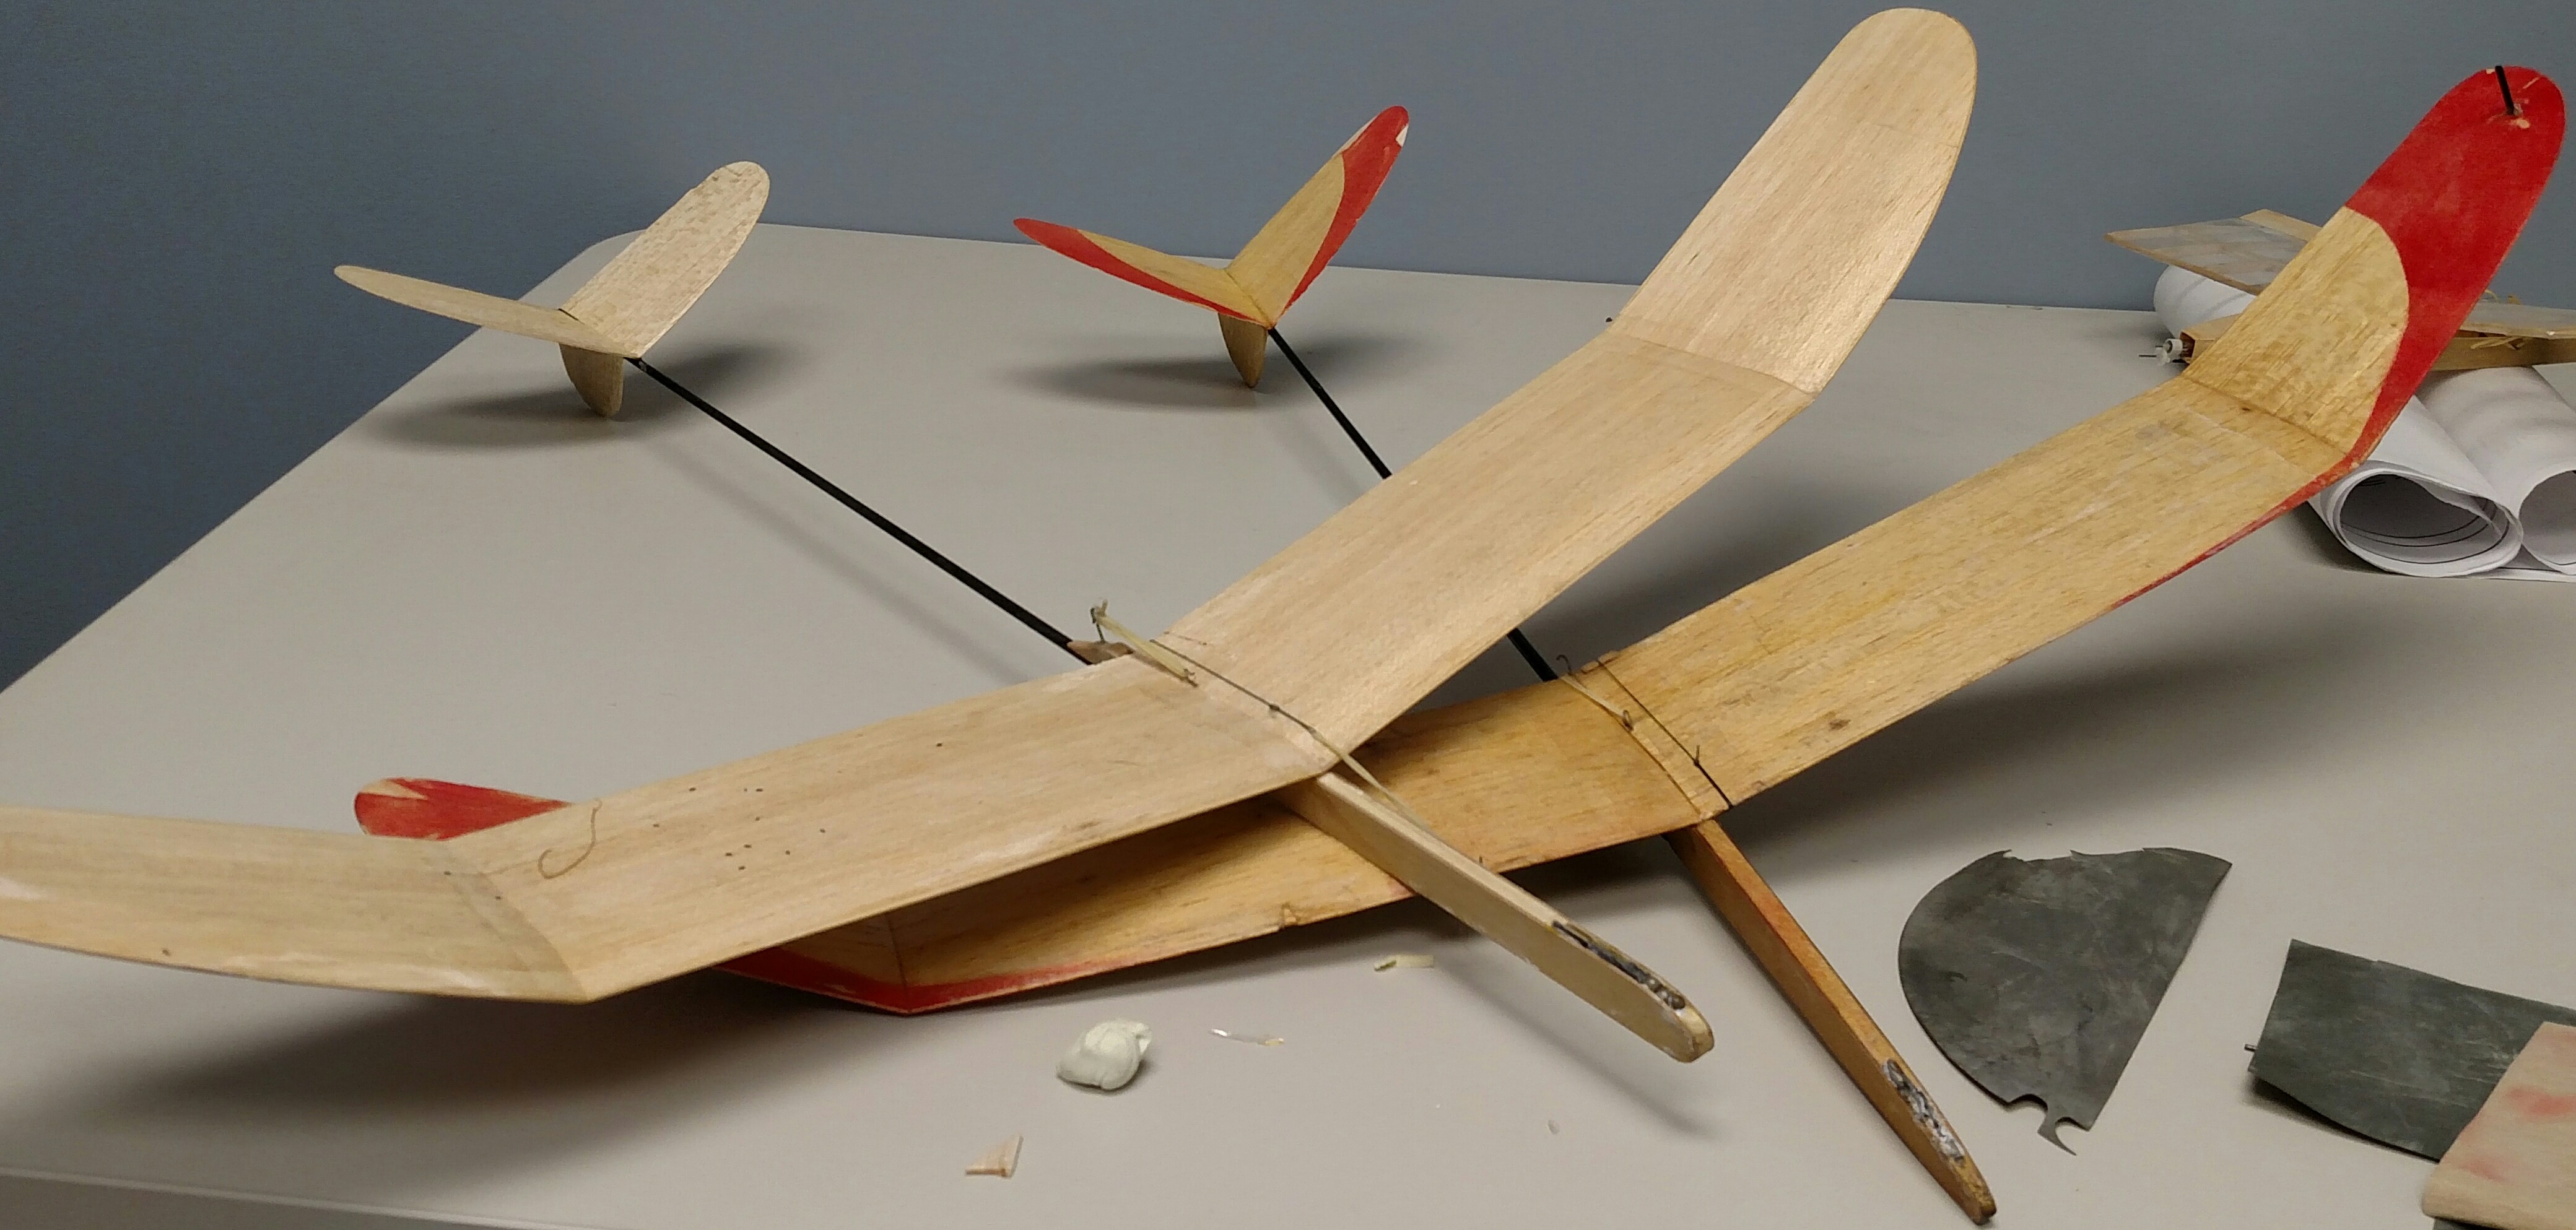 Let's talk about chuck gliders | FliteTest Forum